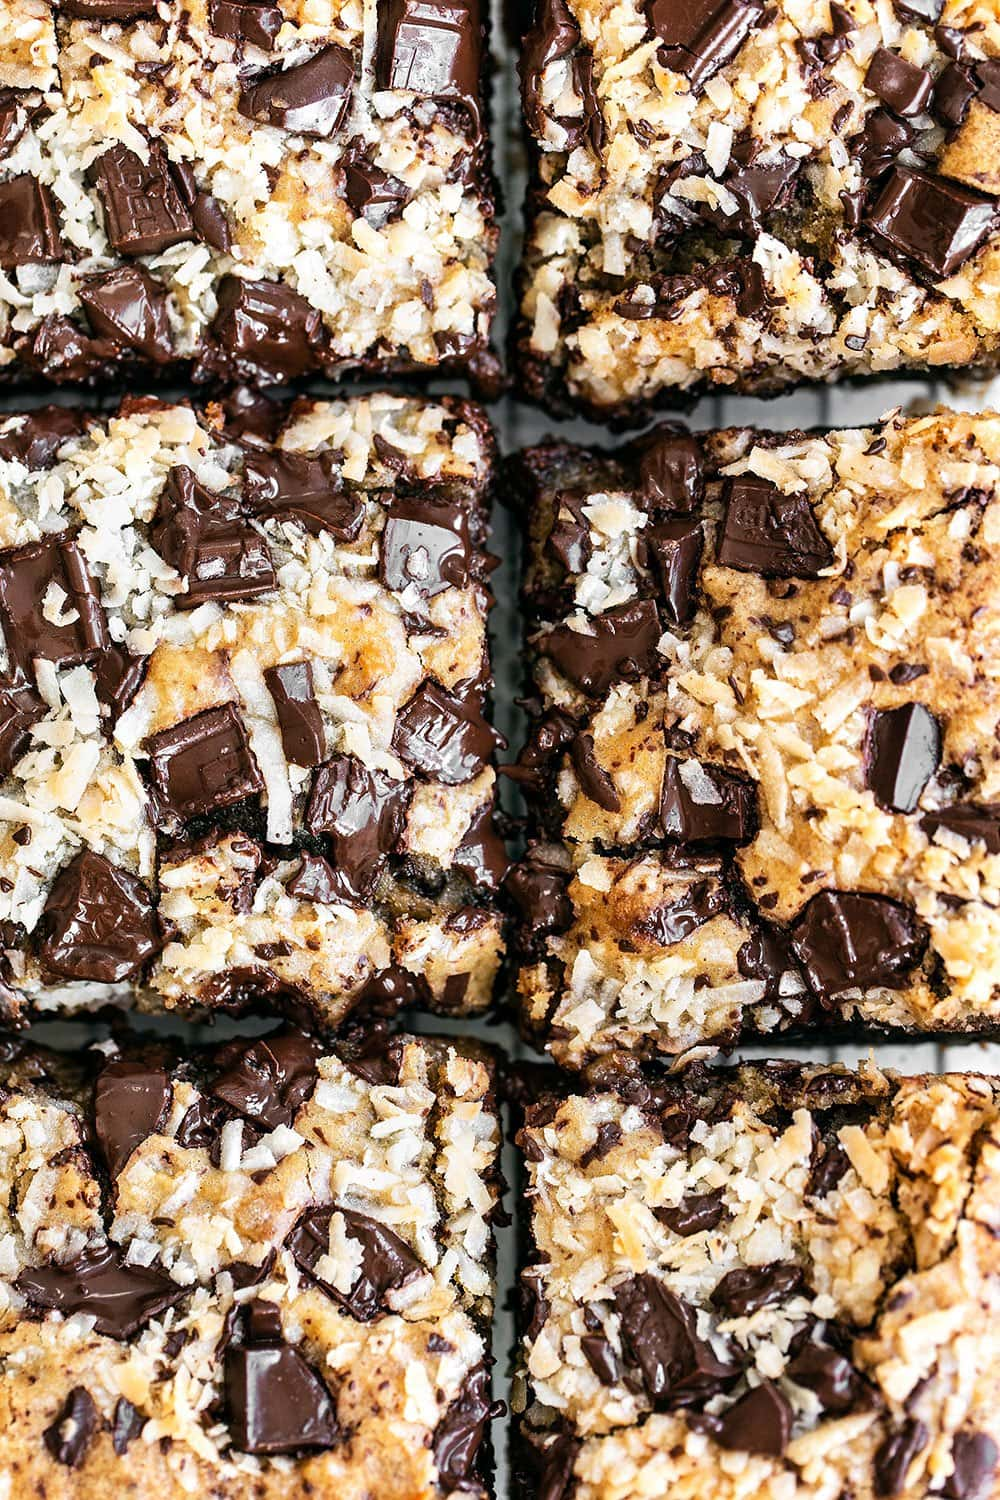 Up close look at the tops of the blondies with chocolate chunks and coconut flakes